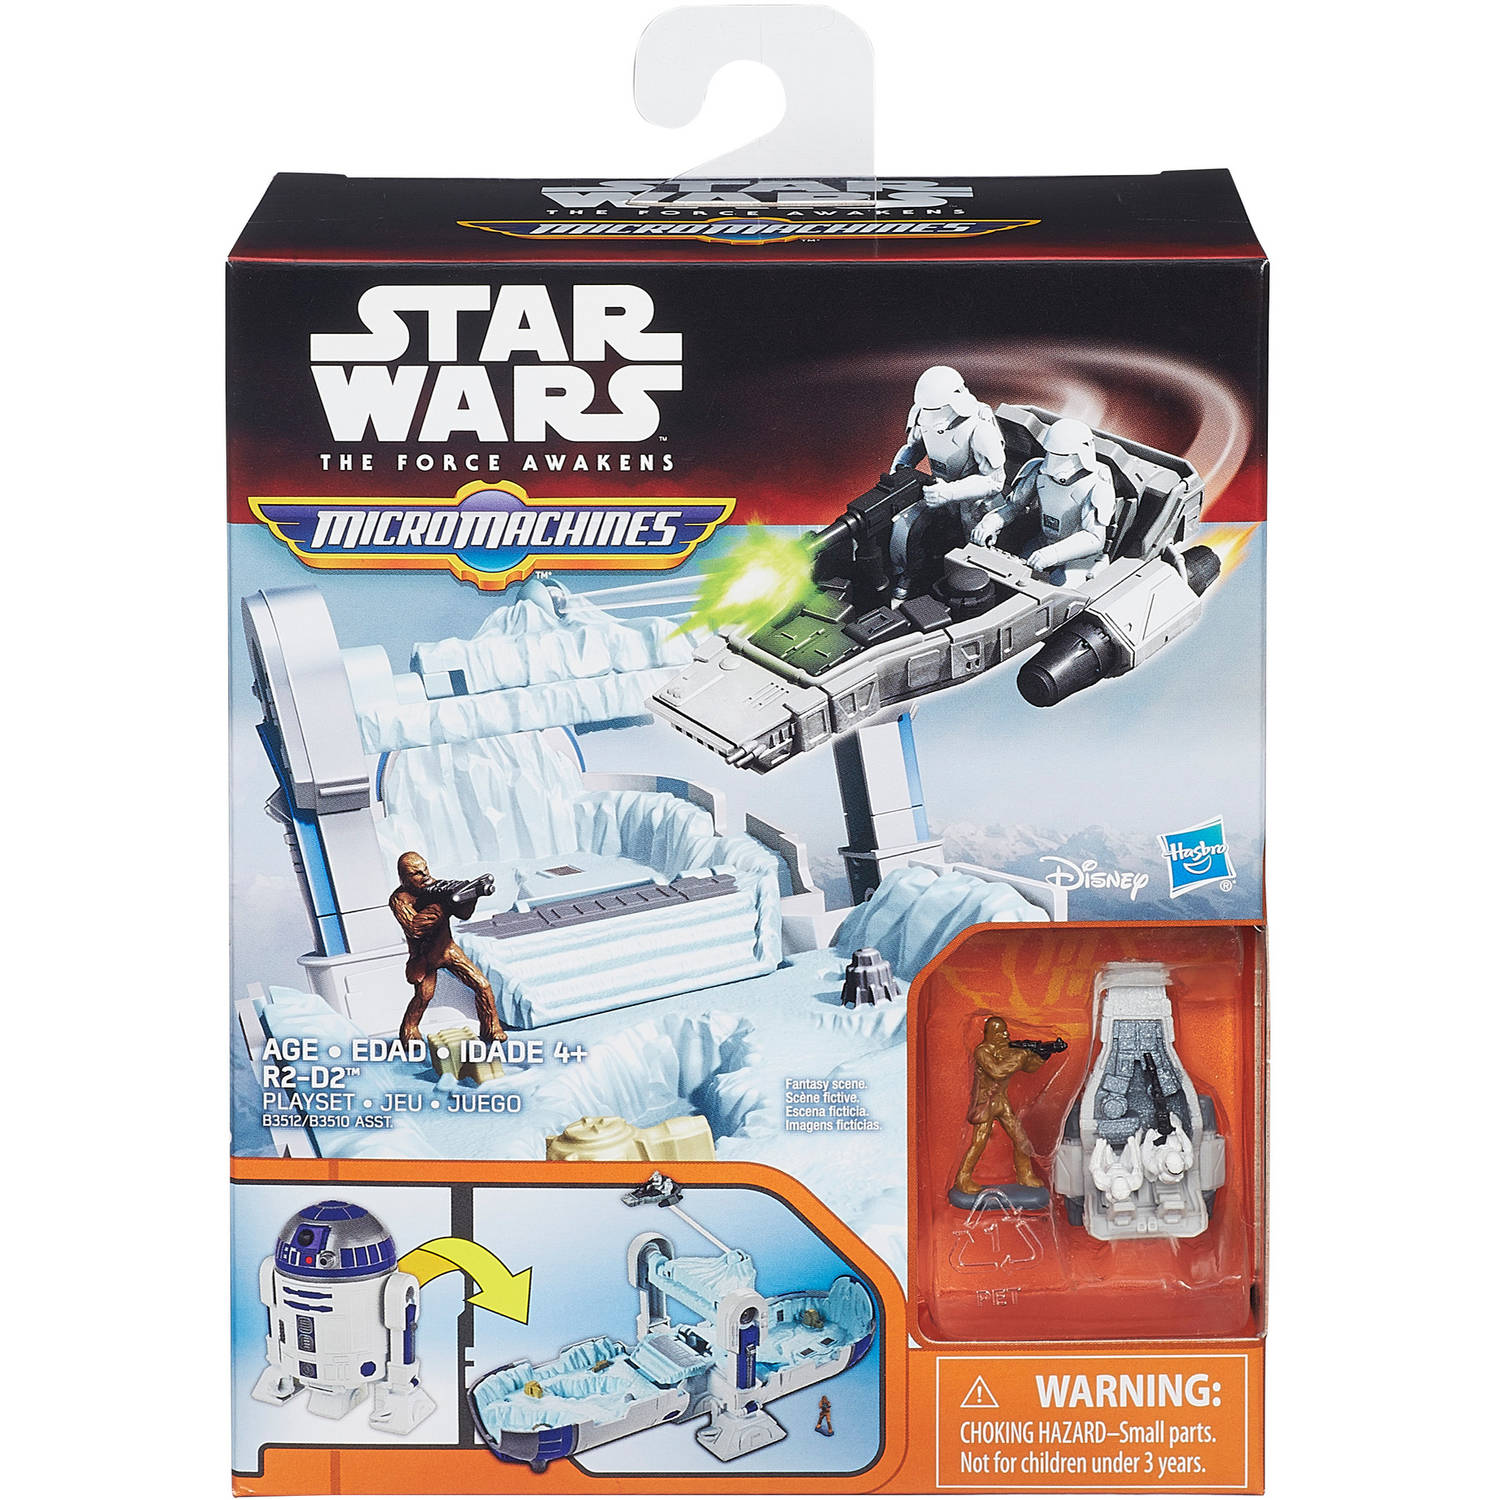 star wars the force awakens micro machines r2-d2 playset - walmart